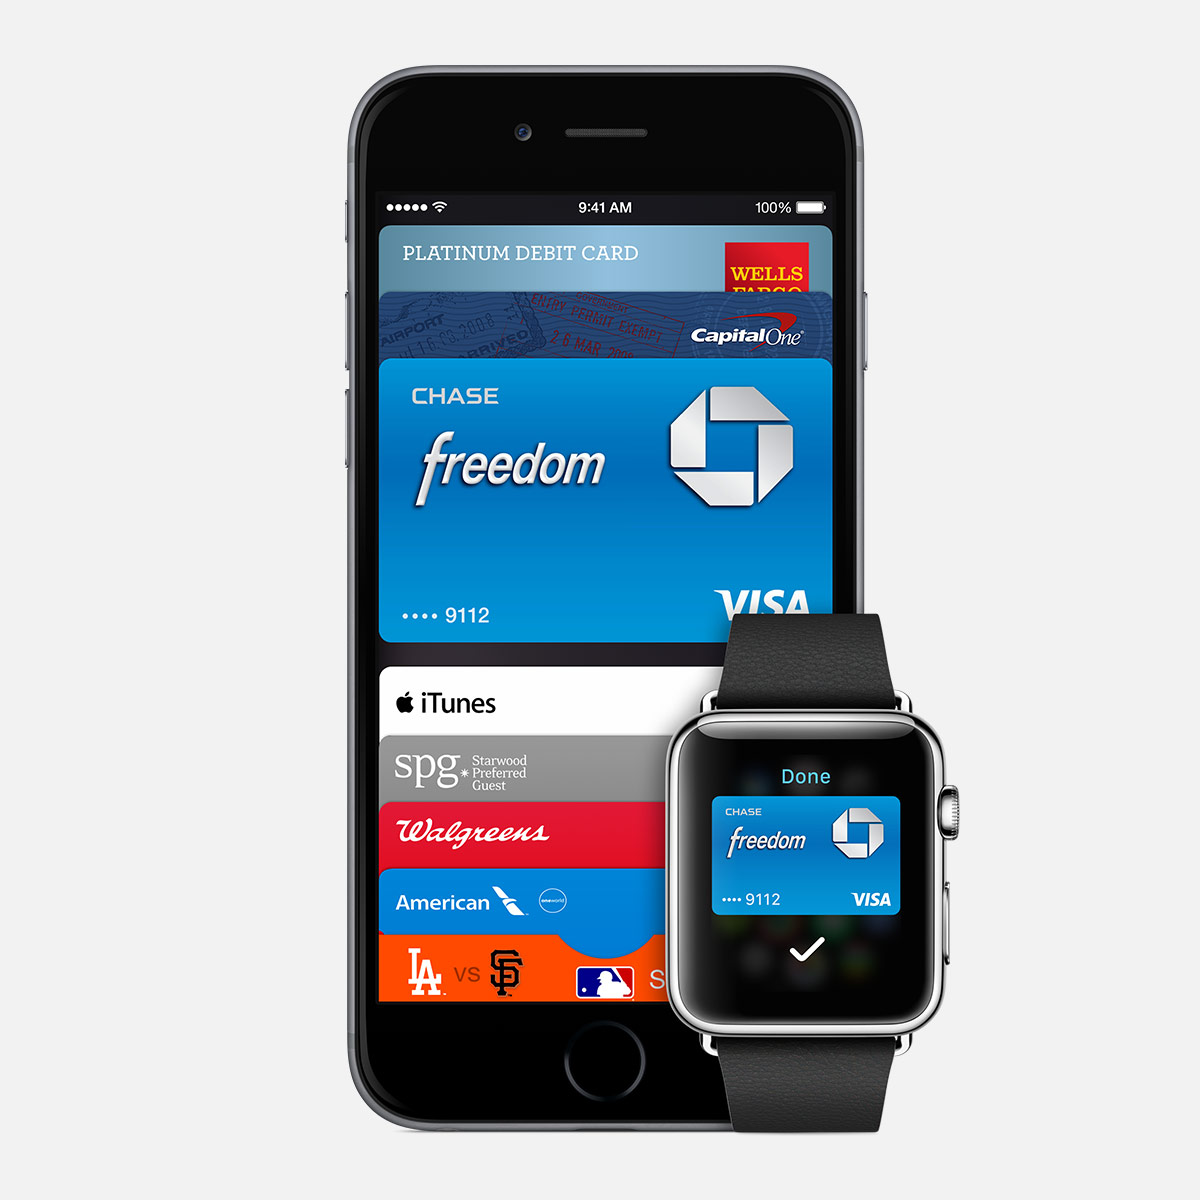 Marriott and Etsy to support Apple Pay soon